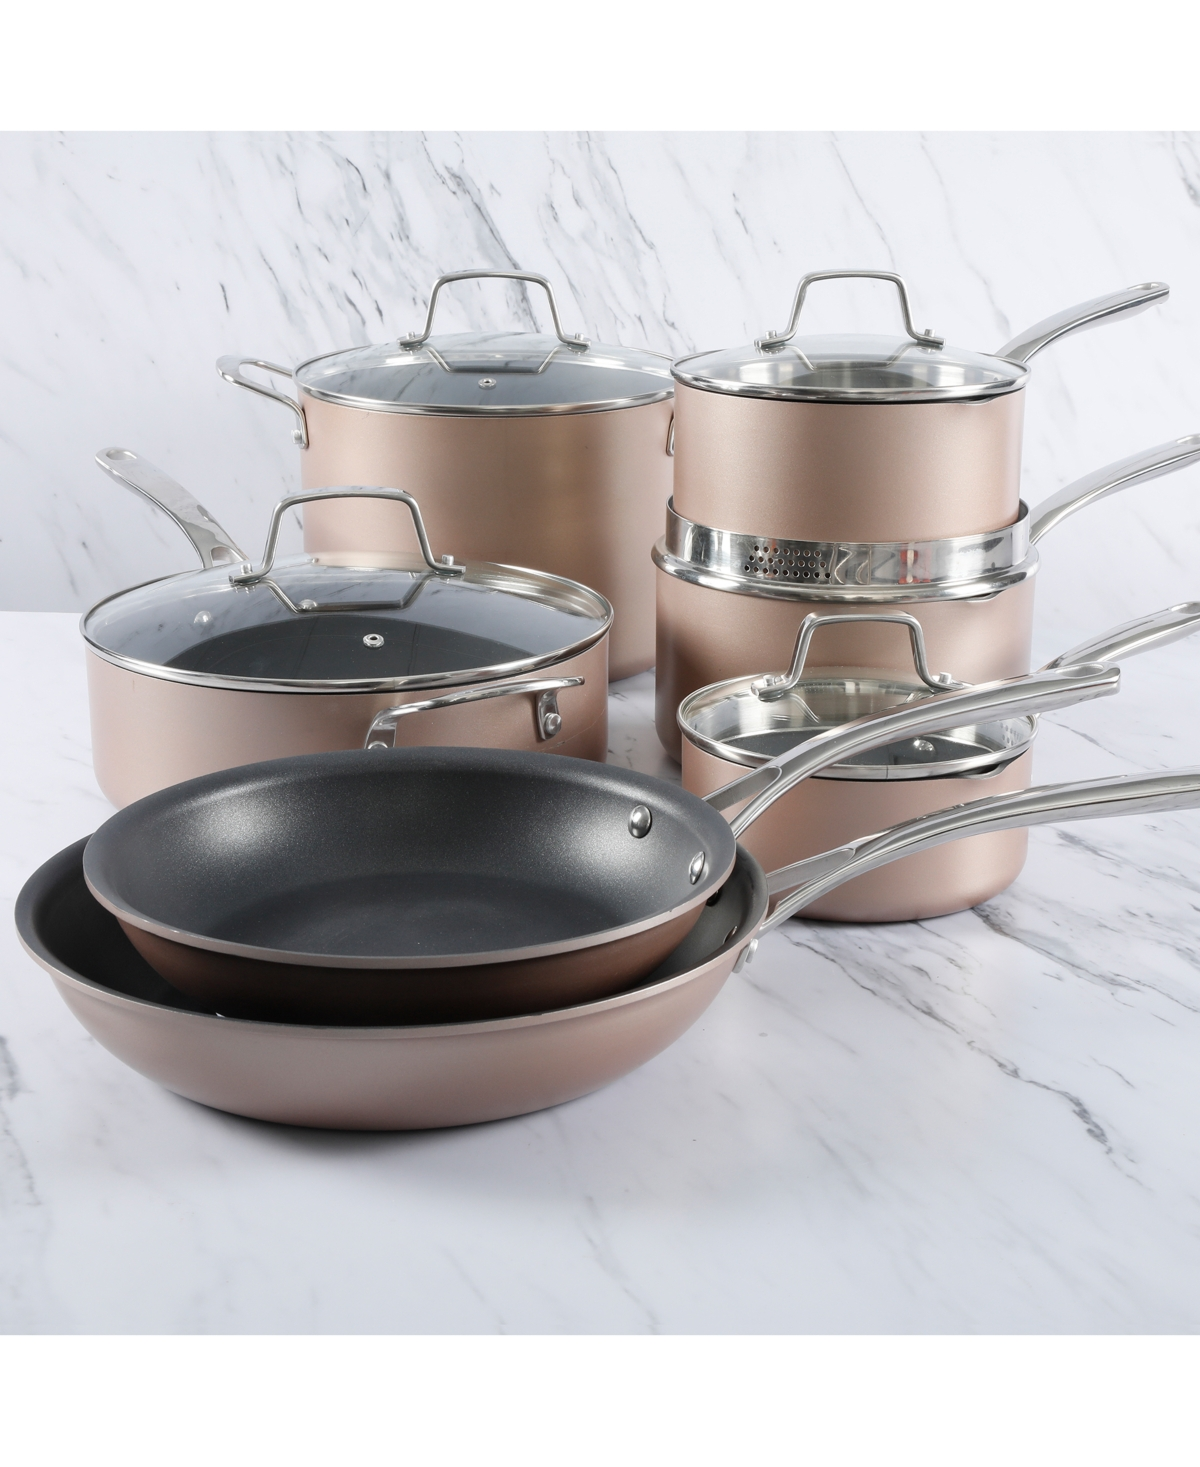 Martha Stewart Collection 12-Pc. Hard-Anodized Aluminum Cookware Set, Created for Macy's